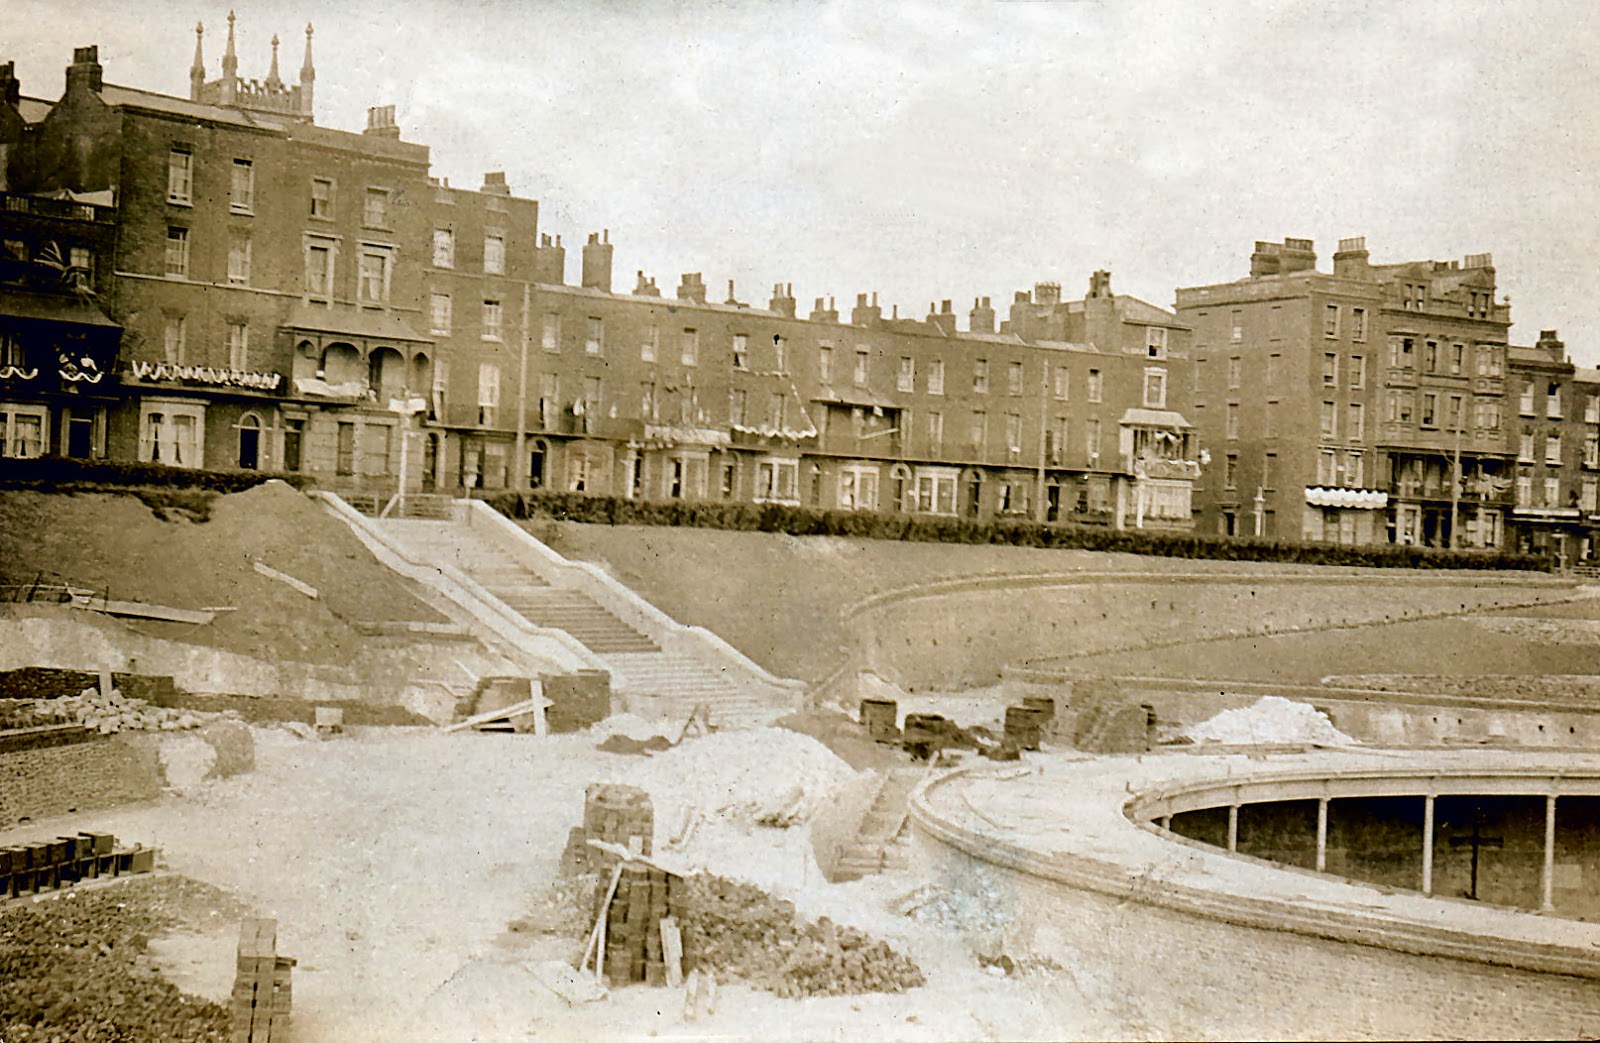 Thanet coast life: The Mick Twyman collection - The construction of ...